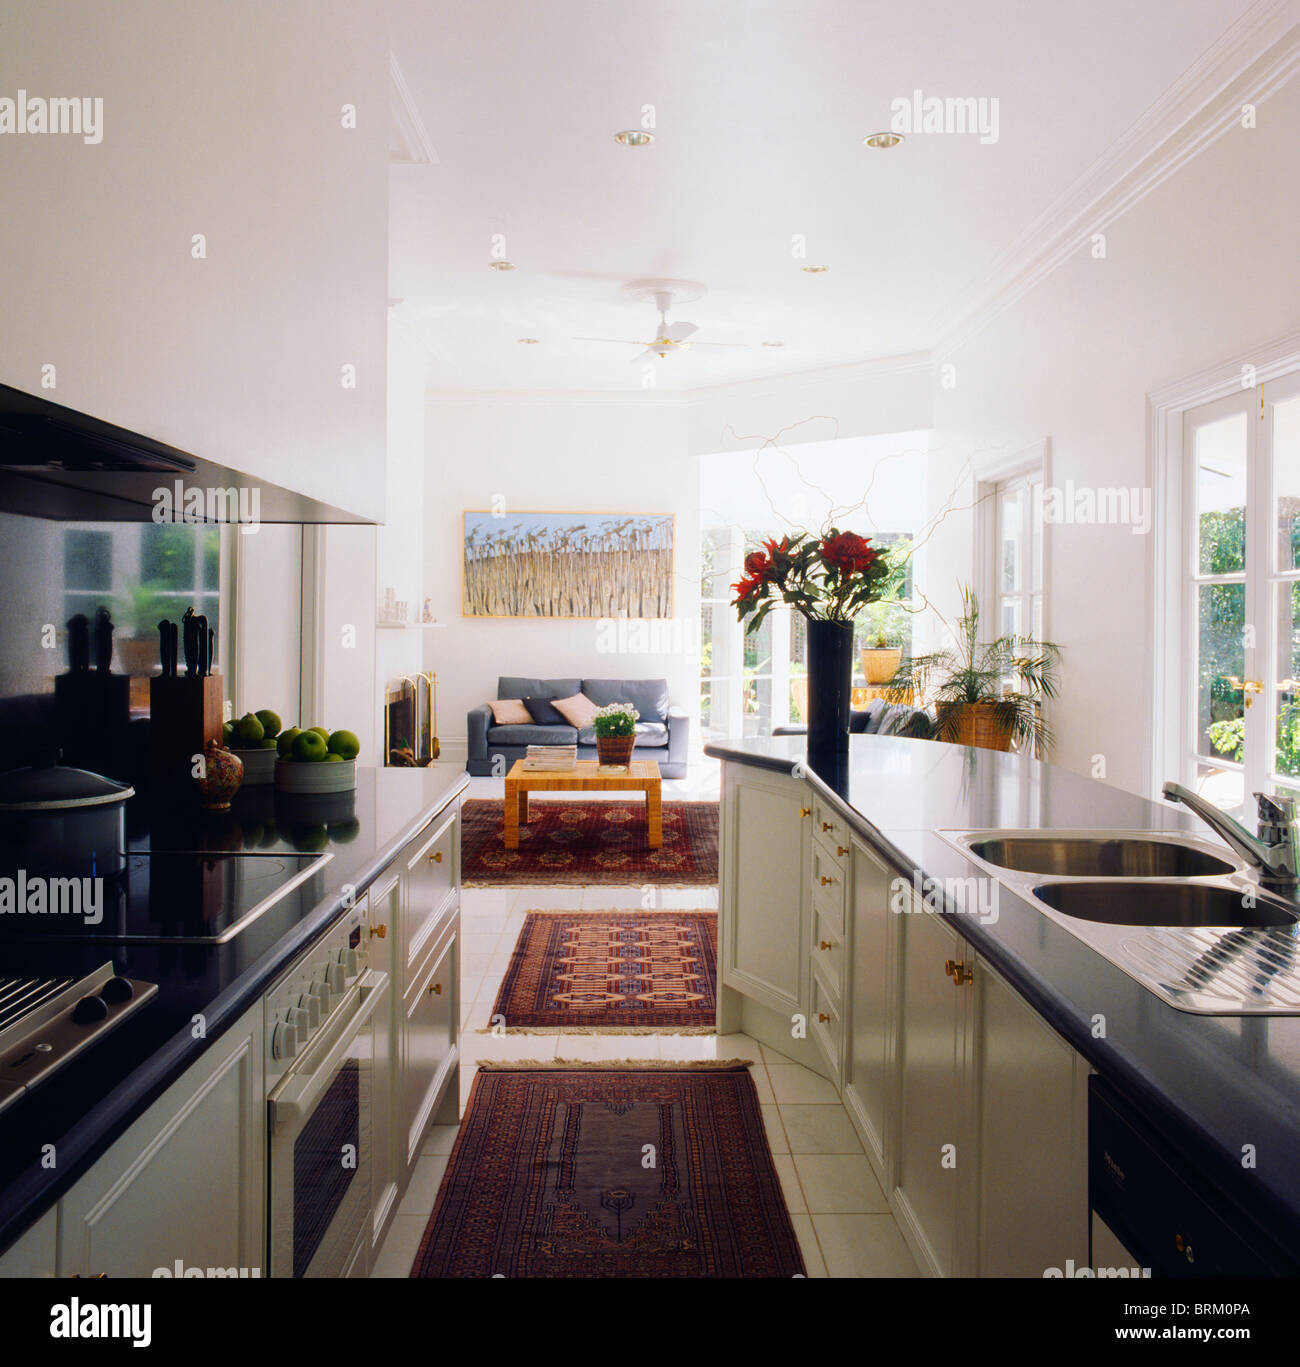 Orange Kitchen Room With White Cabinets Stock Image: Rugs On Floor In Open-plan White Galley Kitchen With Black